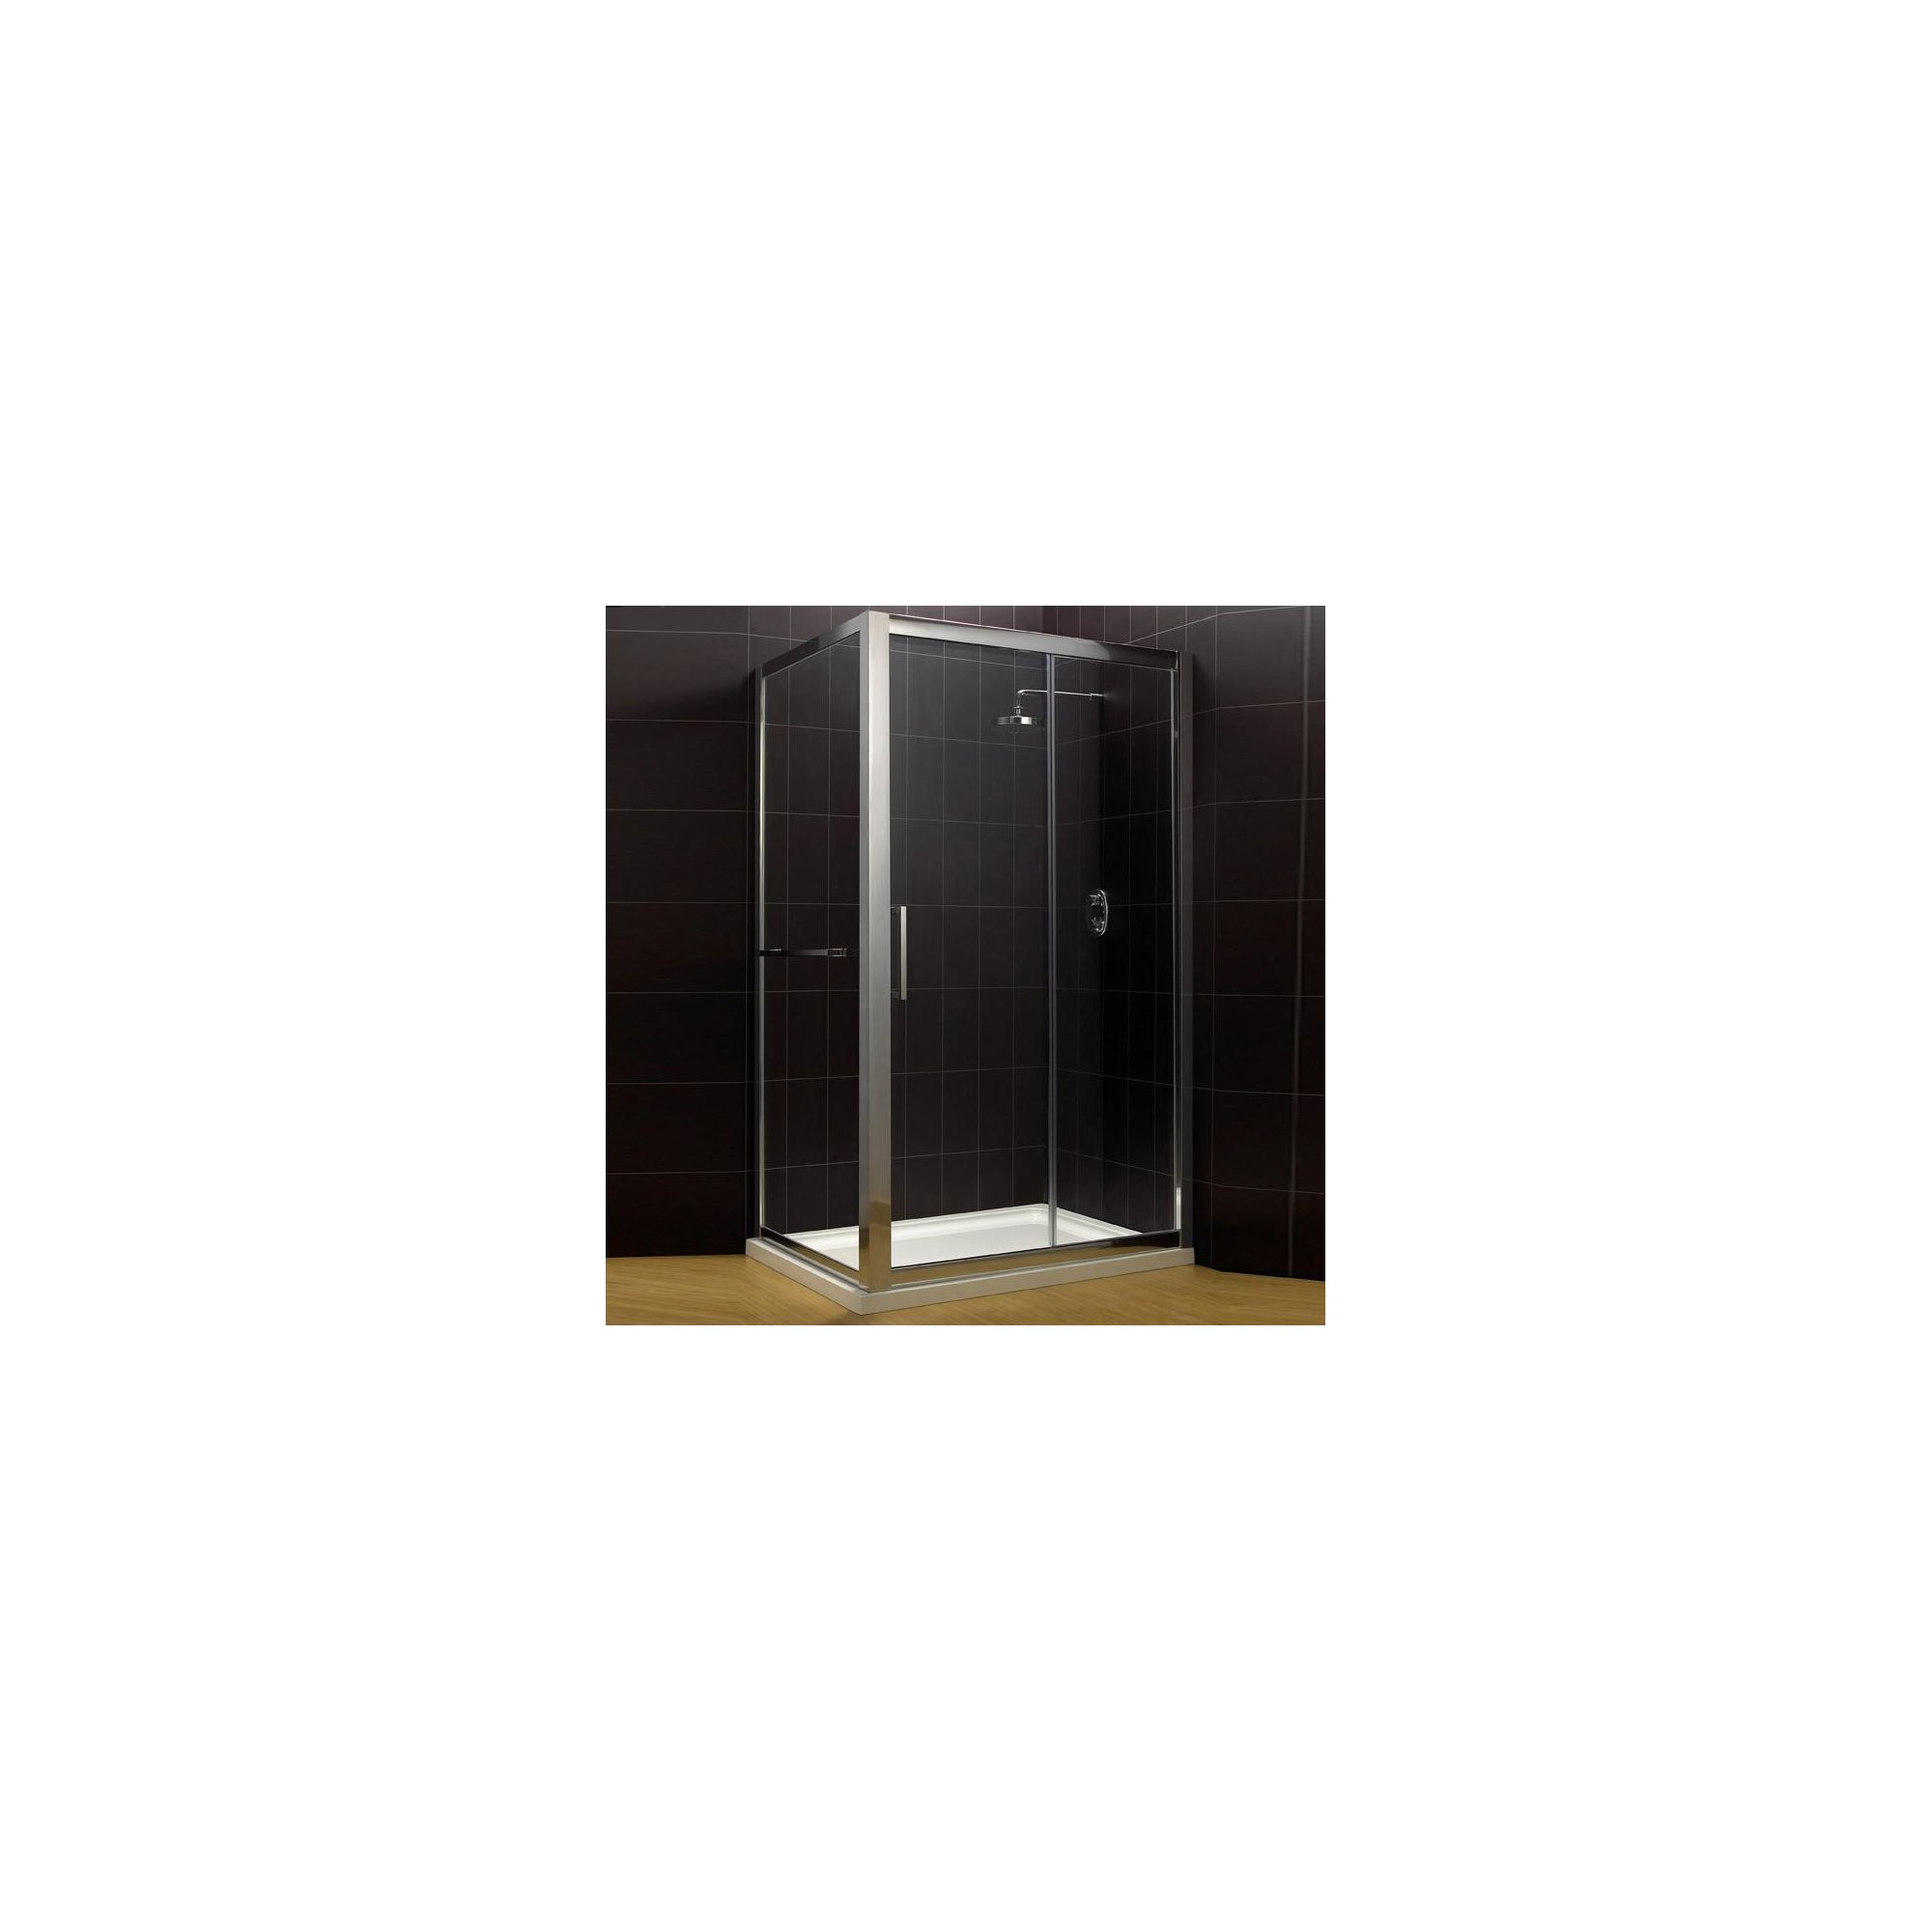 Duchy Supreme Silver Sliding Door Shower Enclosure, 1400mm x 700mm, Standard Tray, 8mm Glass at Tesco Direct